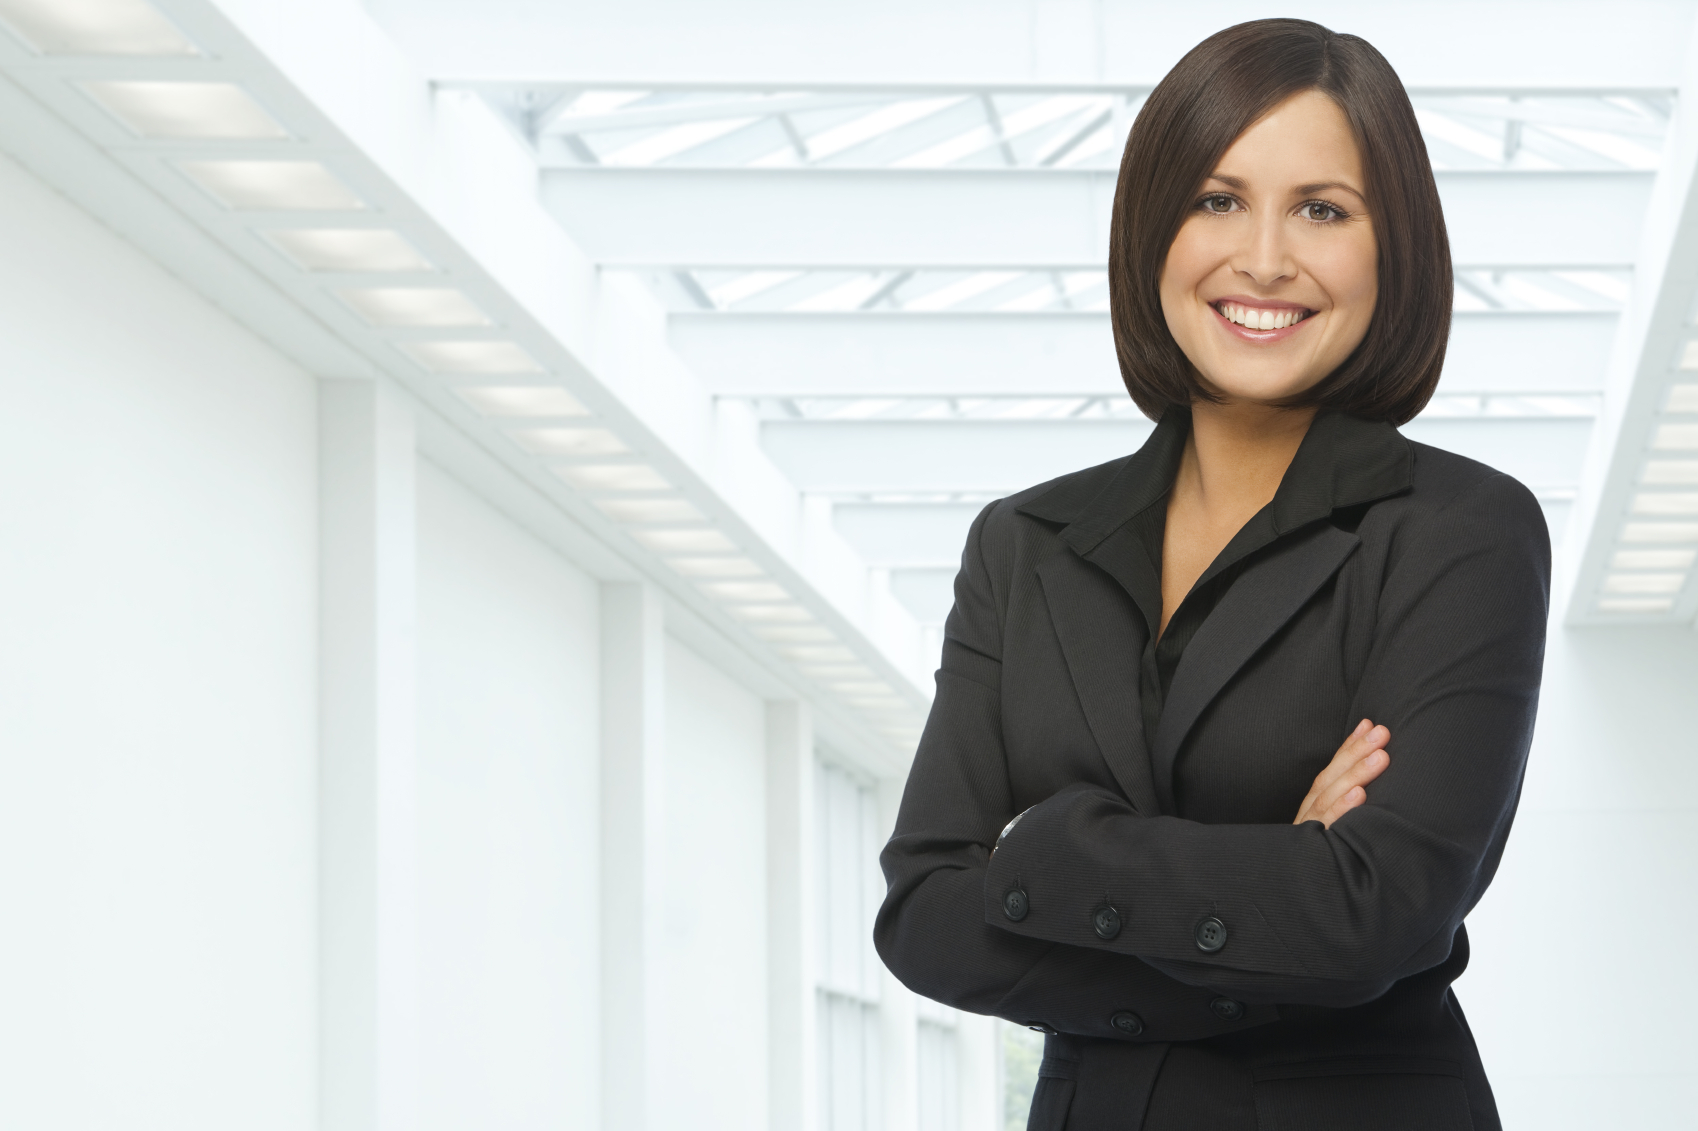 Paralegal career opportunities